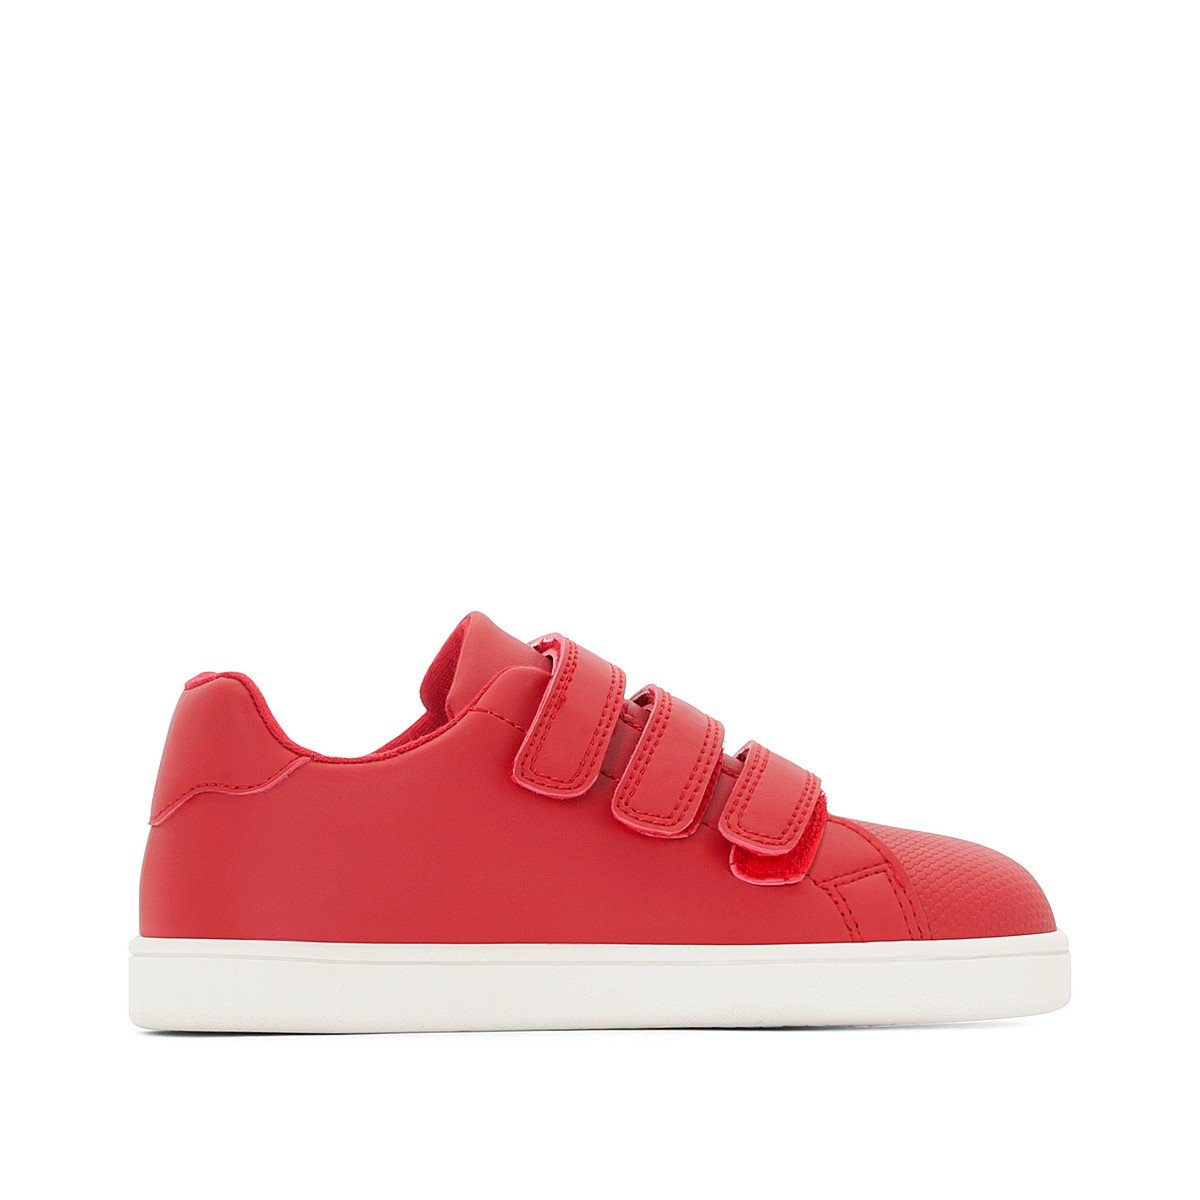 La Redoute Collections Big Boys Red Monochrome Trainers, Sizes 26-29 Red Size 39 (5.5 to 6)